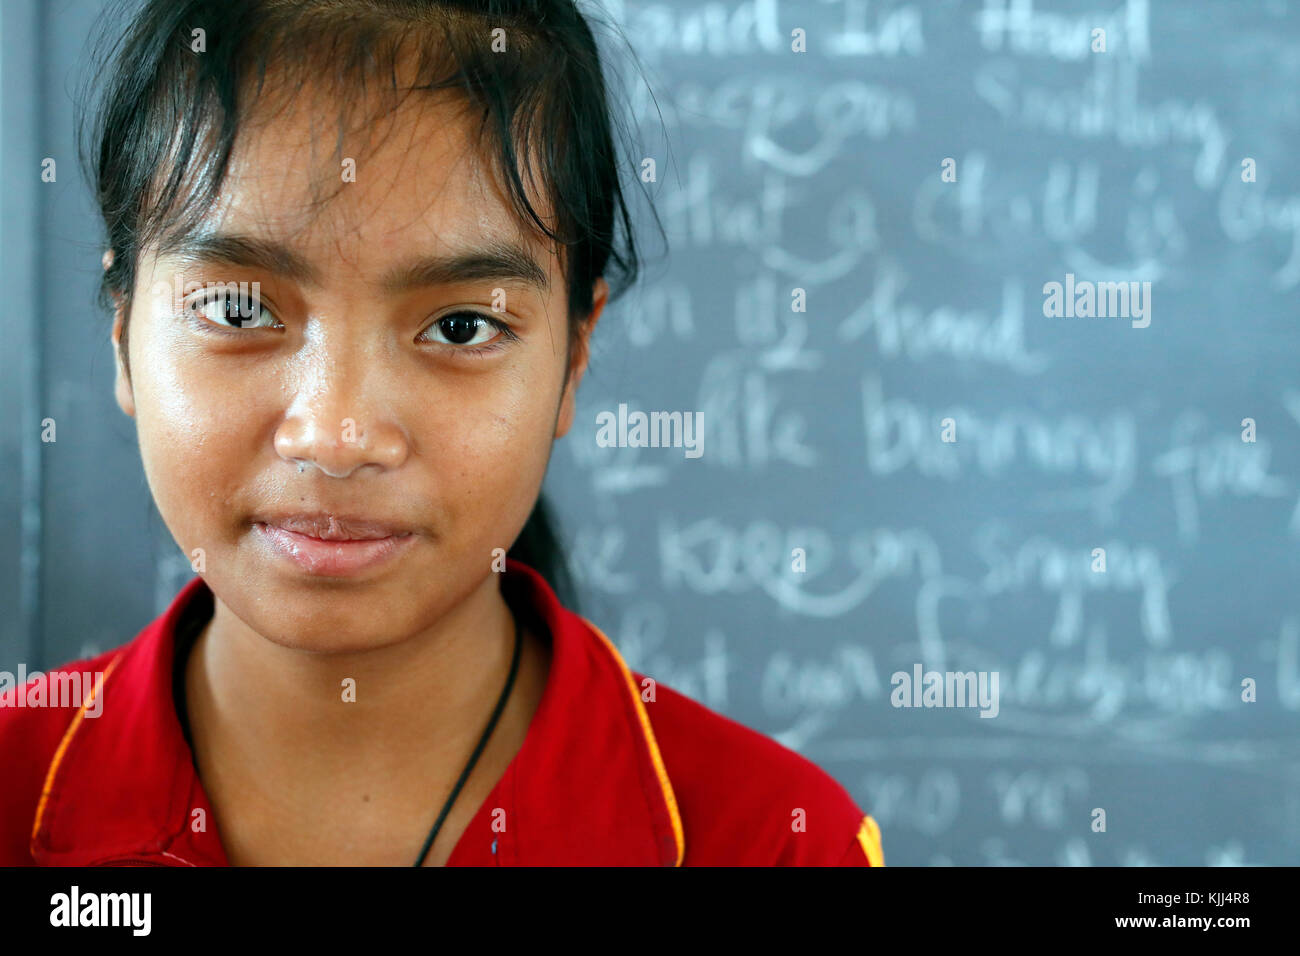 Center for ethnic minority girl run  by the Franciscan Missionaries of Mary. - Stock Image